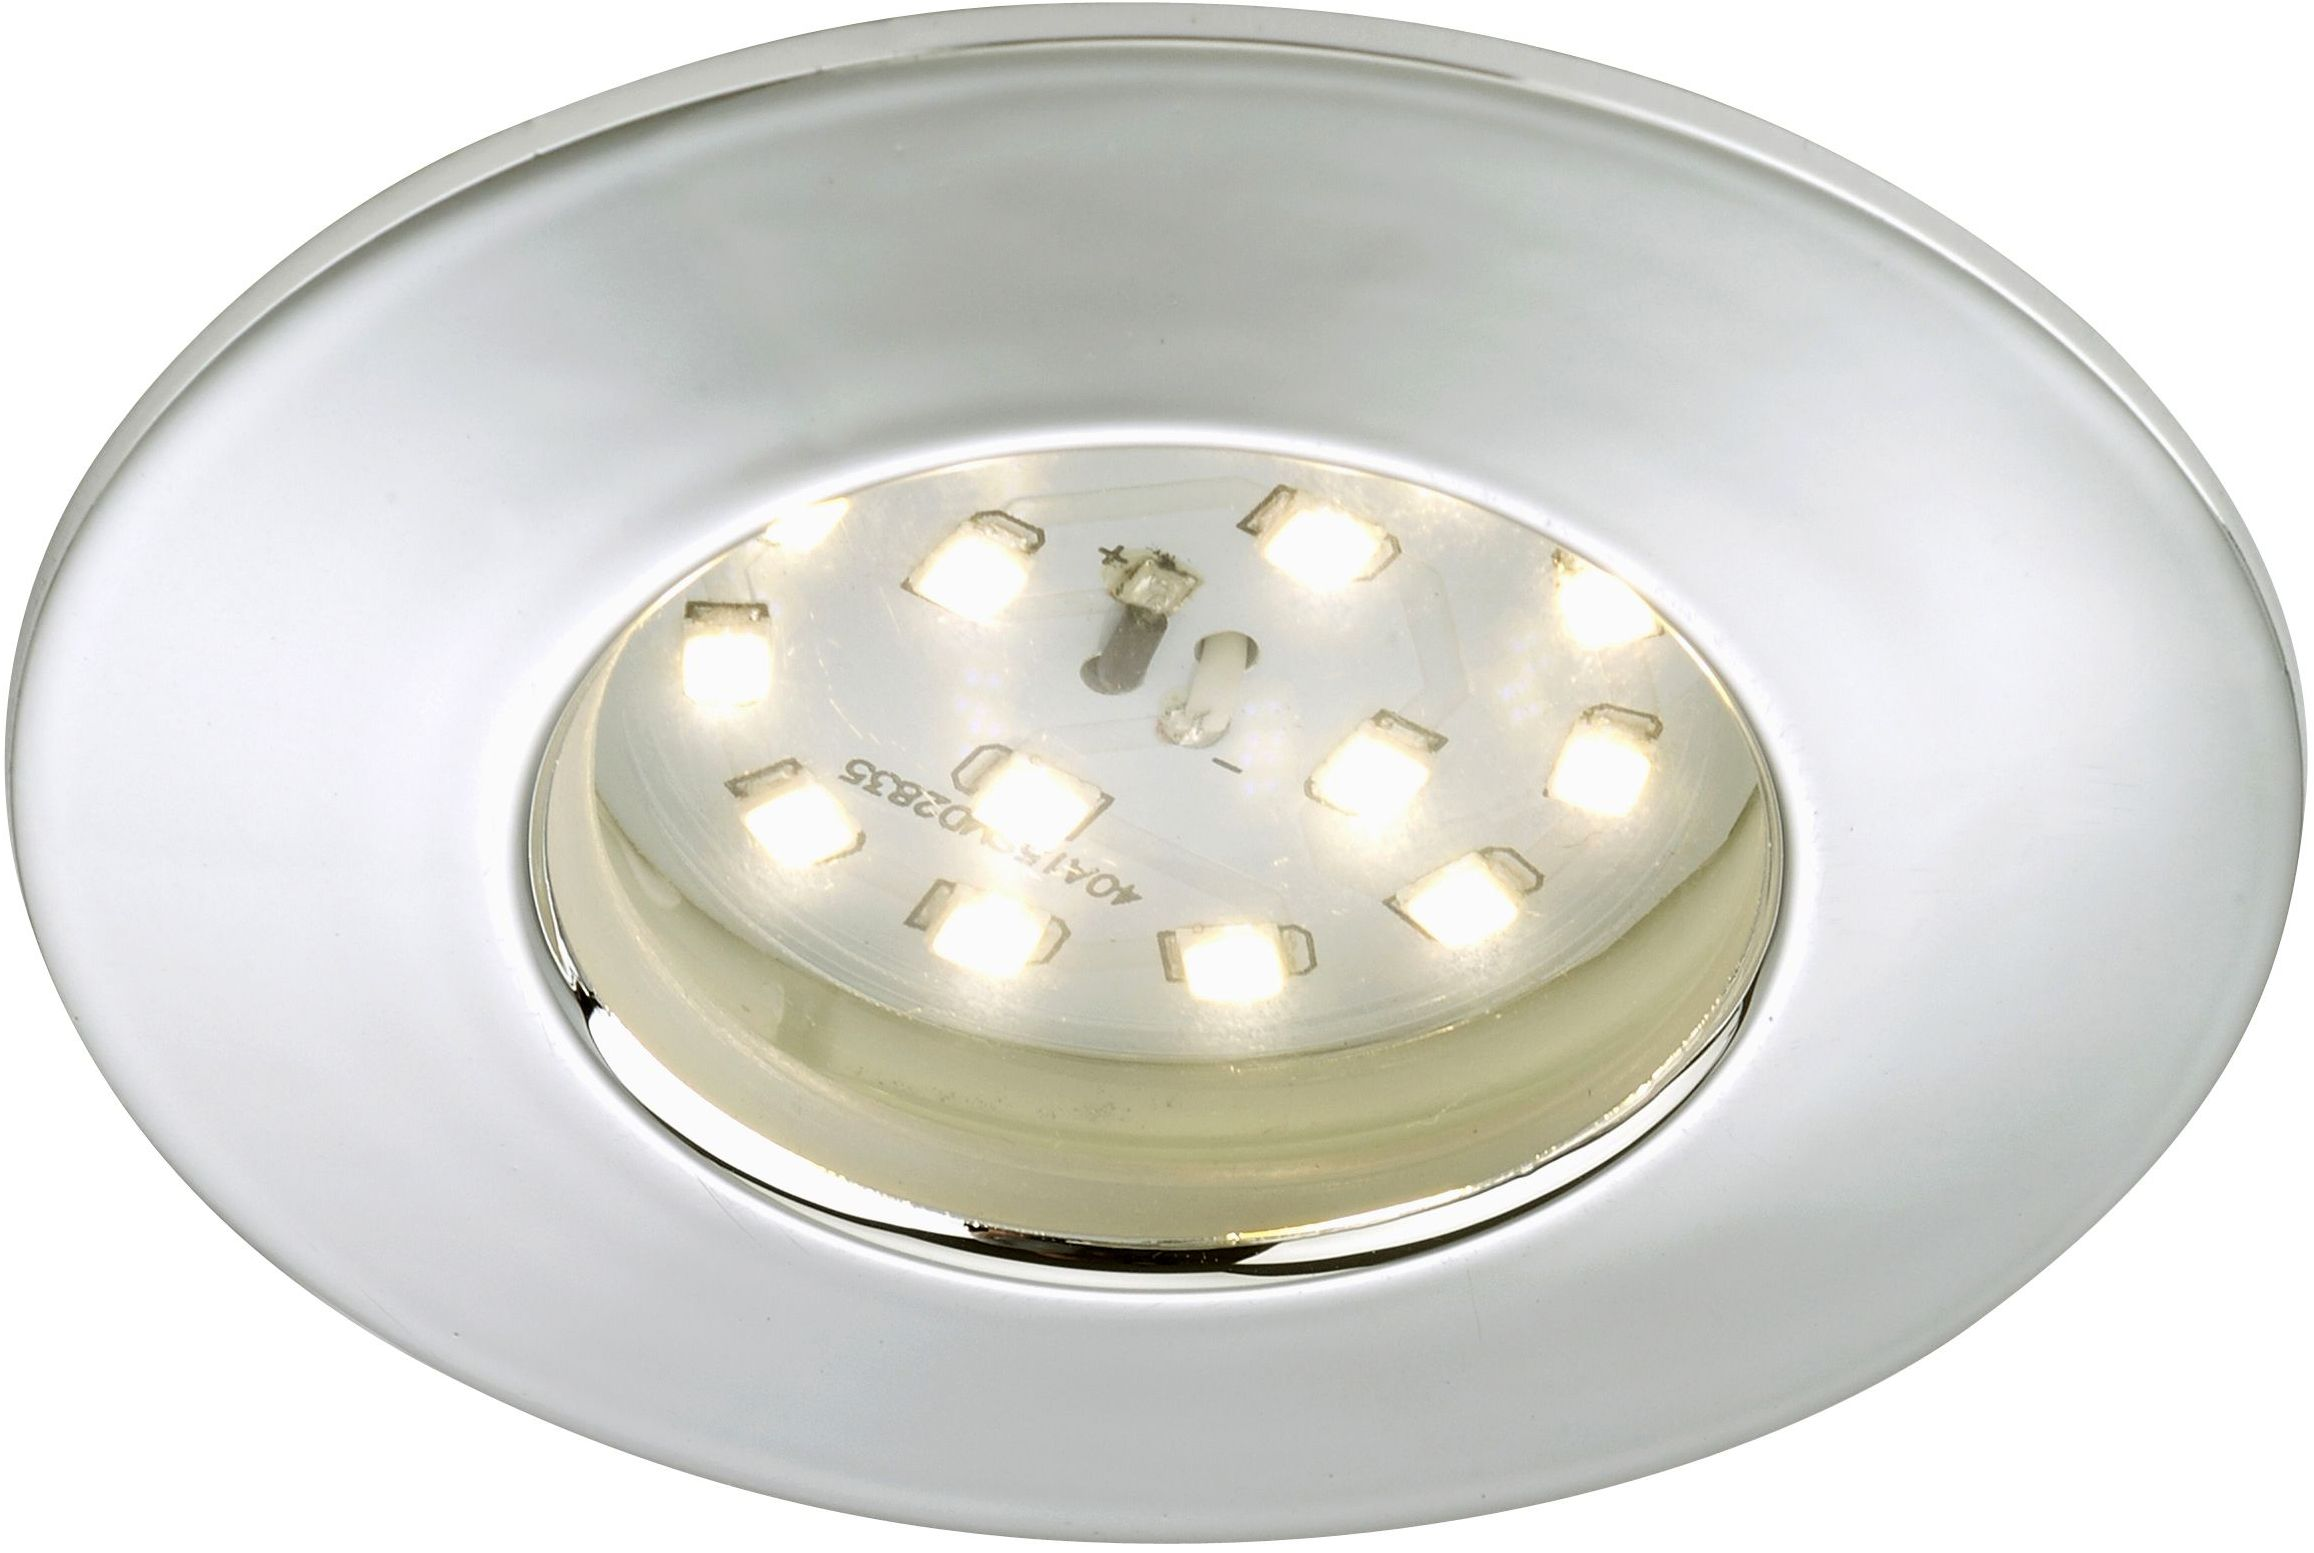 LED-alasvalo Briloner 5W IP 44 kromi